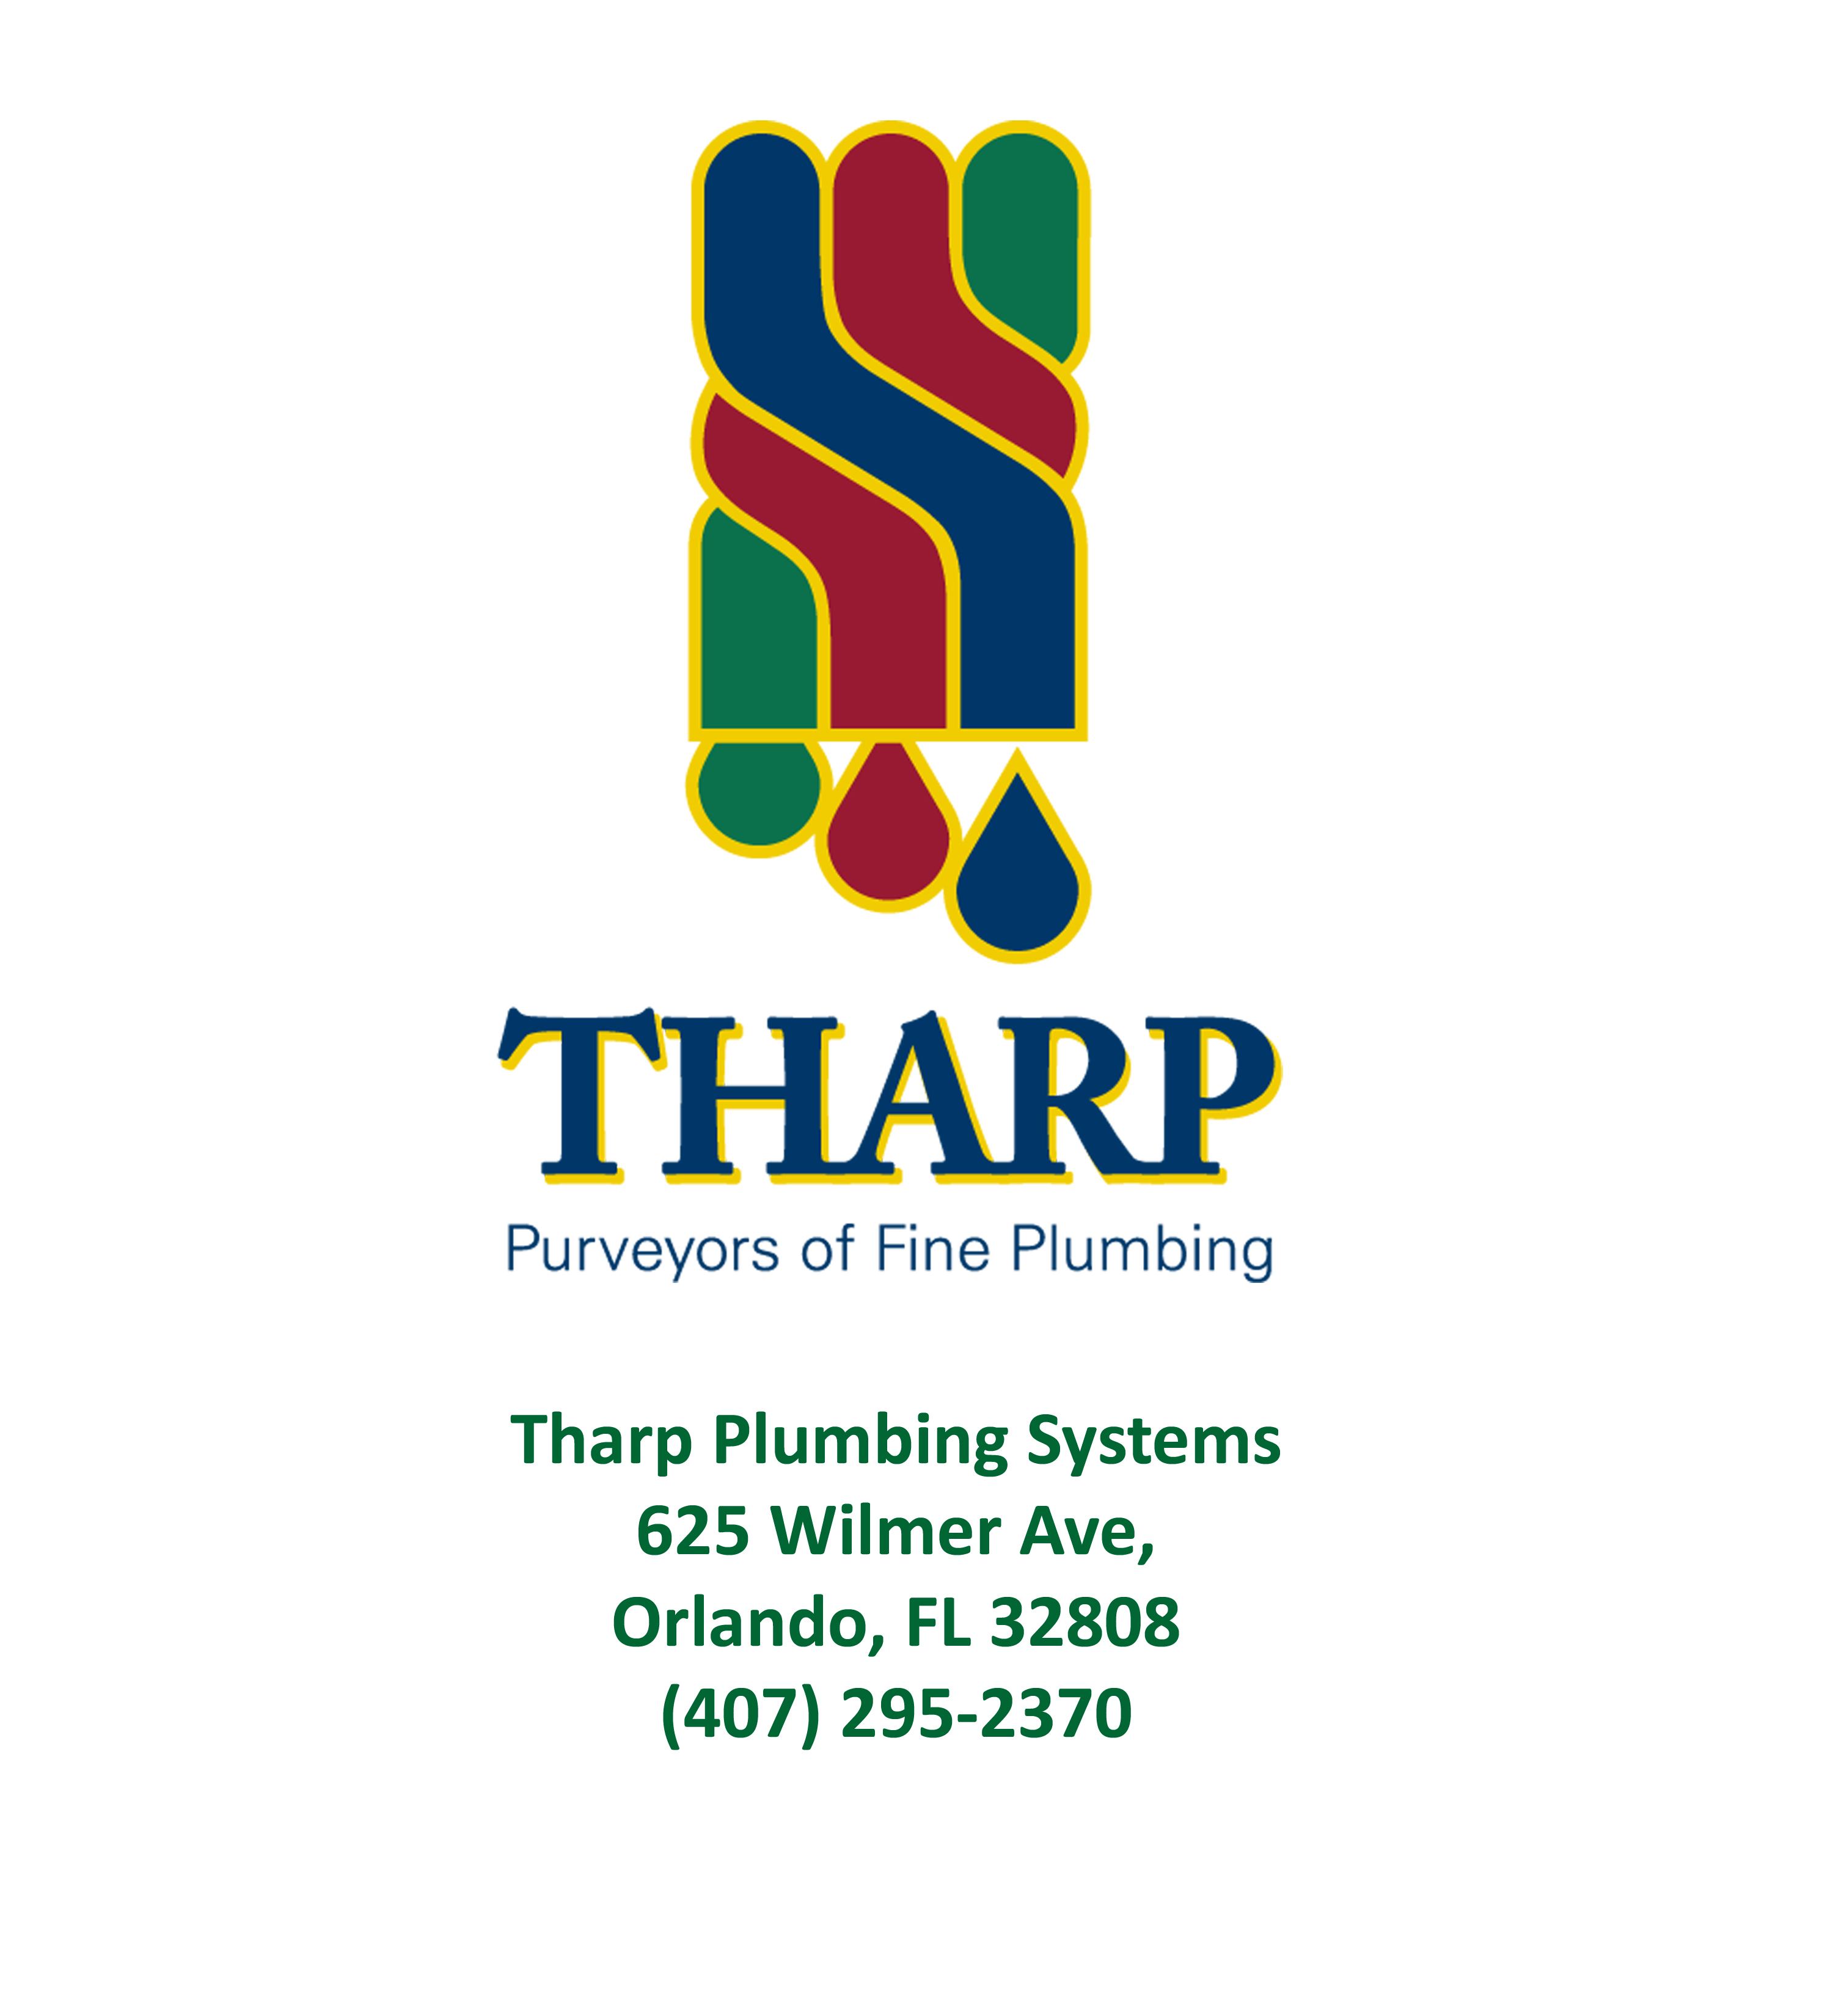 Tharp Plumbing Systems